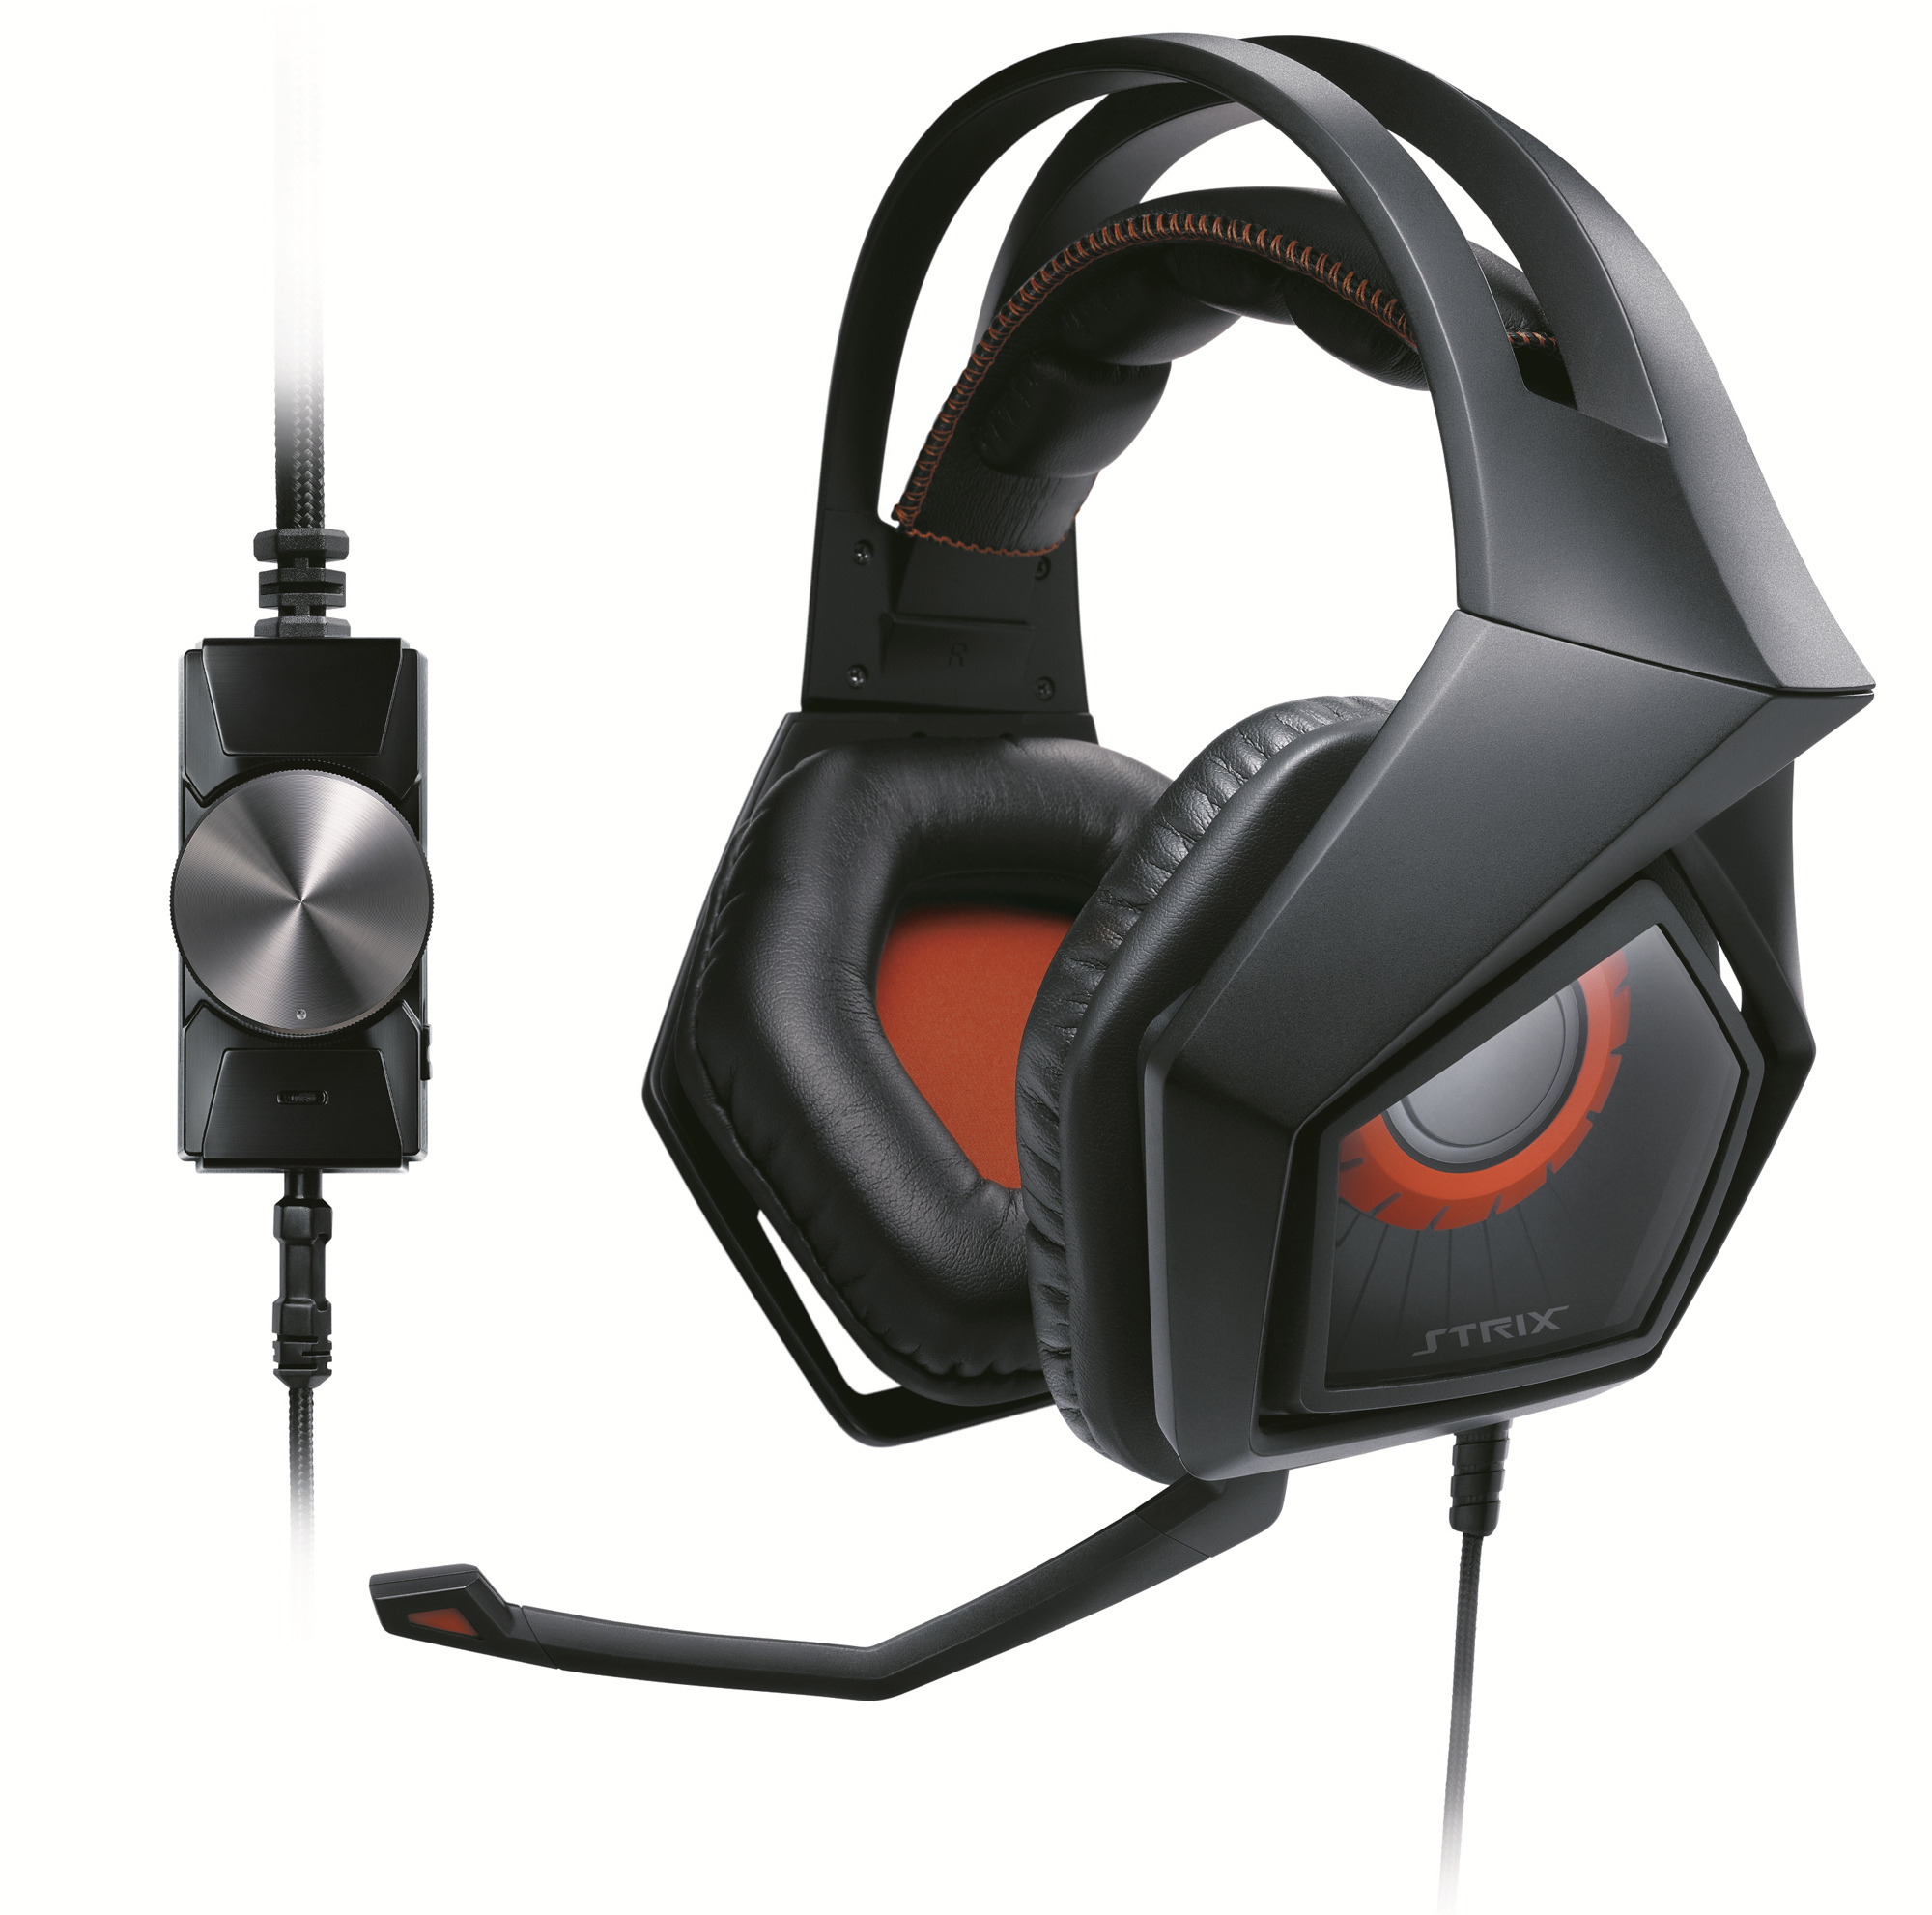 asus announces strix pro gaming headset play3r. Black Bedroom Furniture Sets. Home Design Ideas